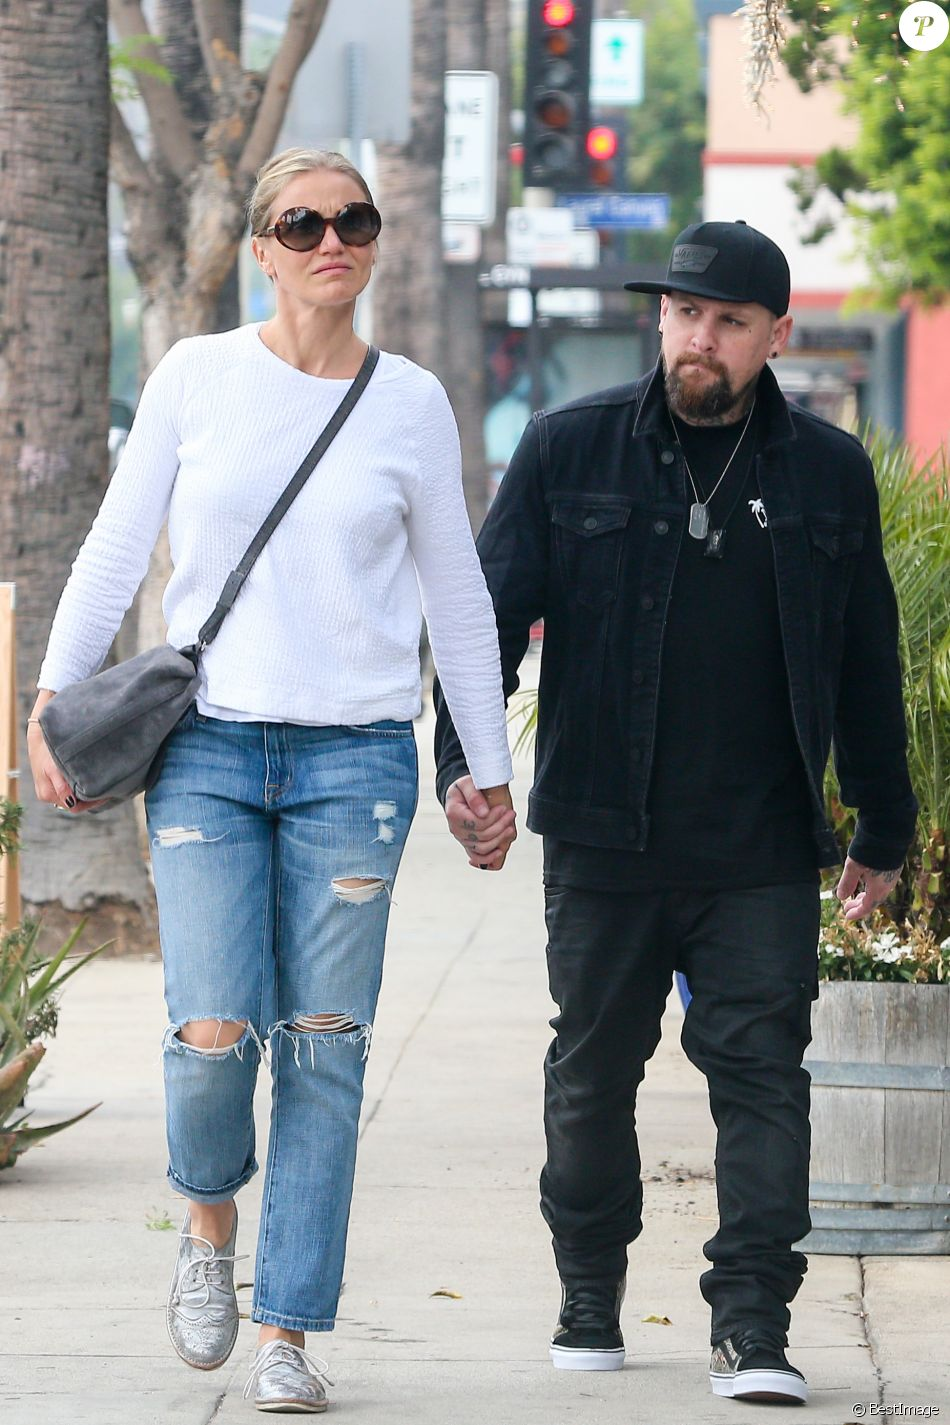 exclusif cameron diaz et son mari benji madden se prom nent en amoureux dans les rues de los. Black Bedroom Furniture Sets. Home Design Ideas